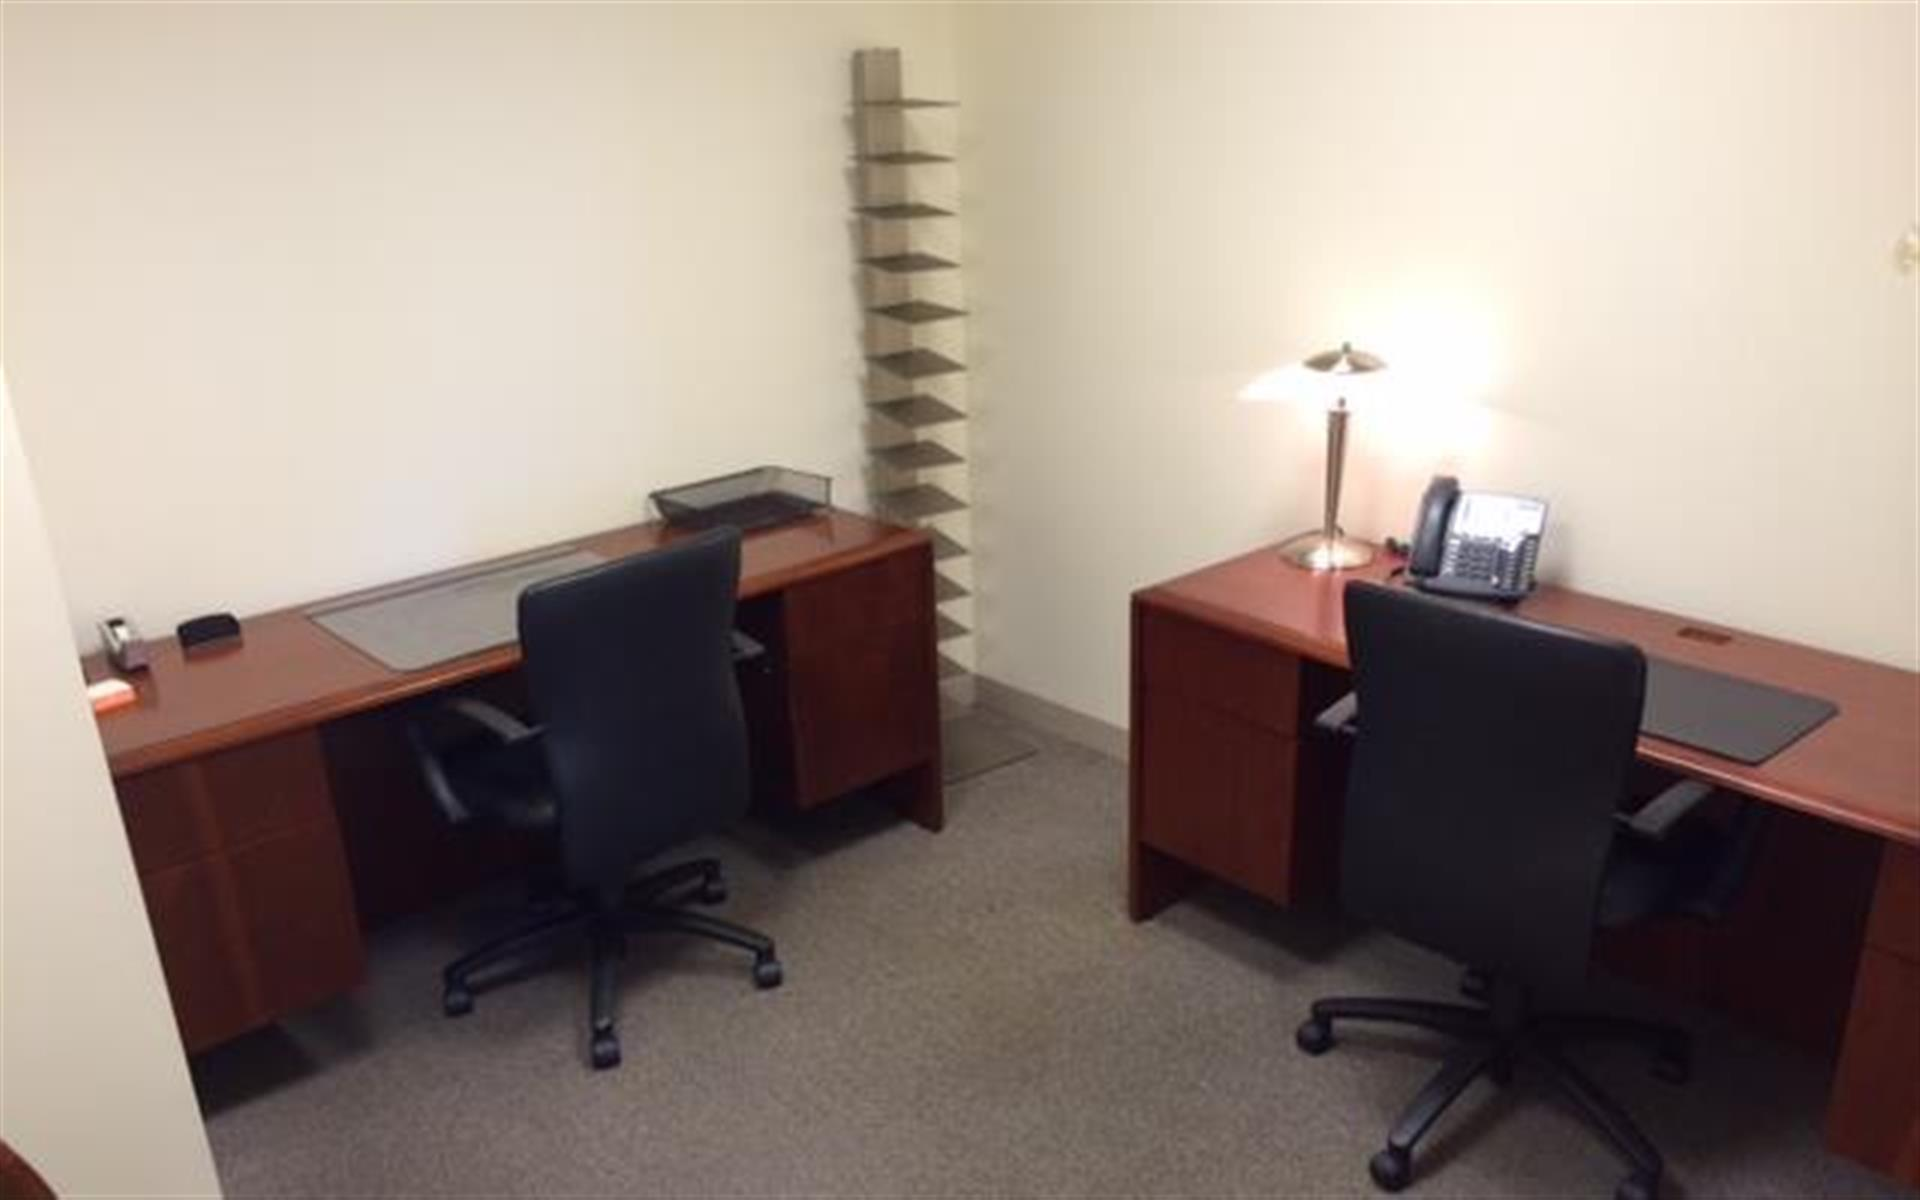 Carr Workplaces - Old Town - Interior Office for 1 or 2 people | 446